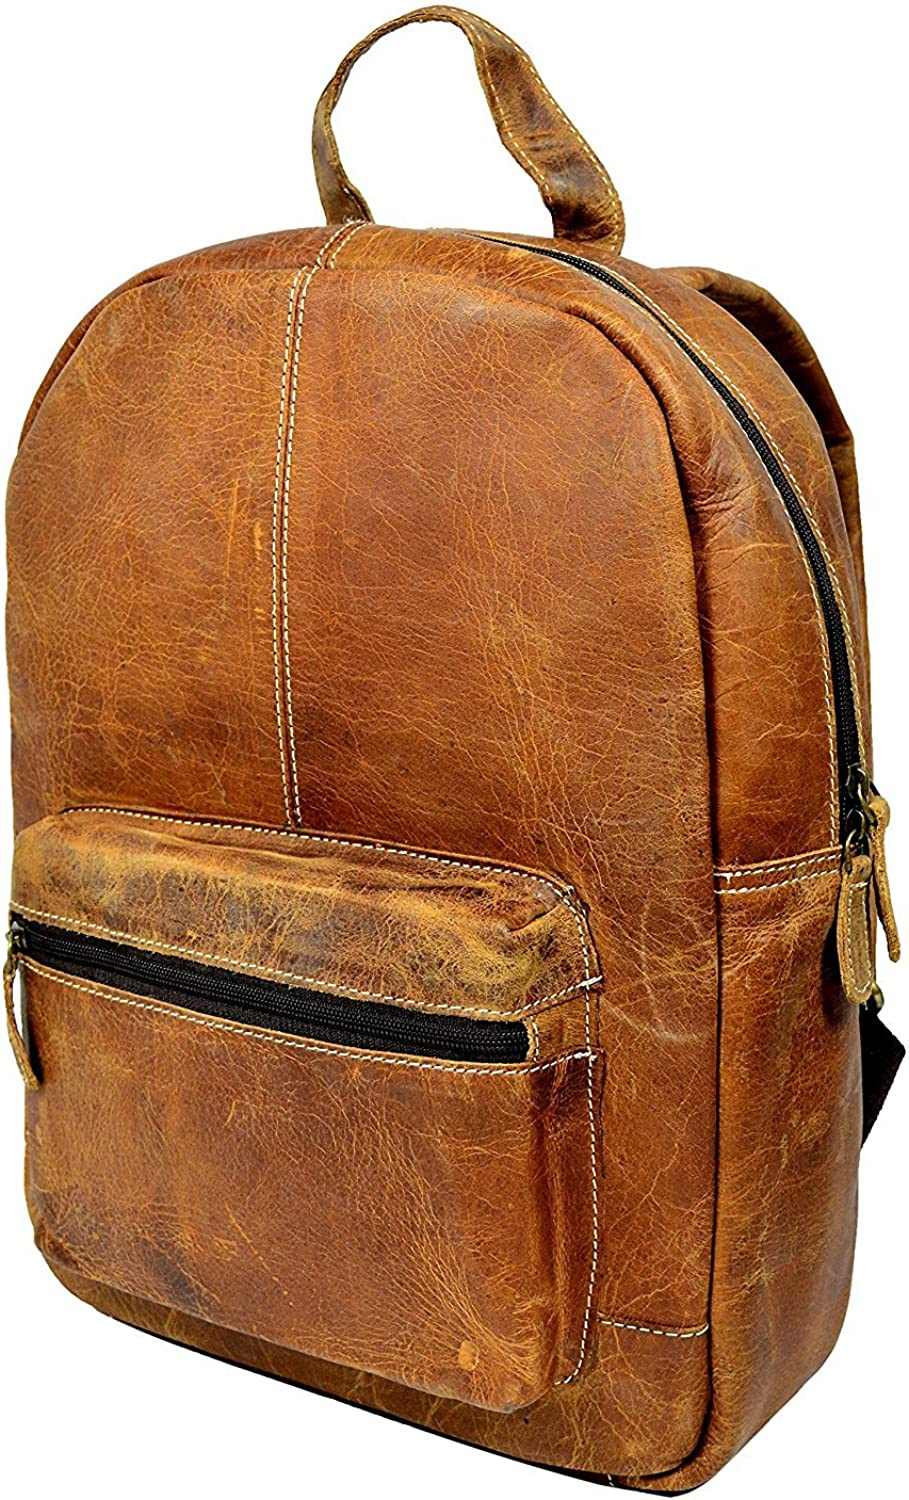 15x11 inches Prastara Leather Backpack College School Laptop Computer Backpack